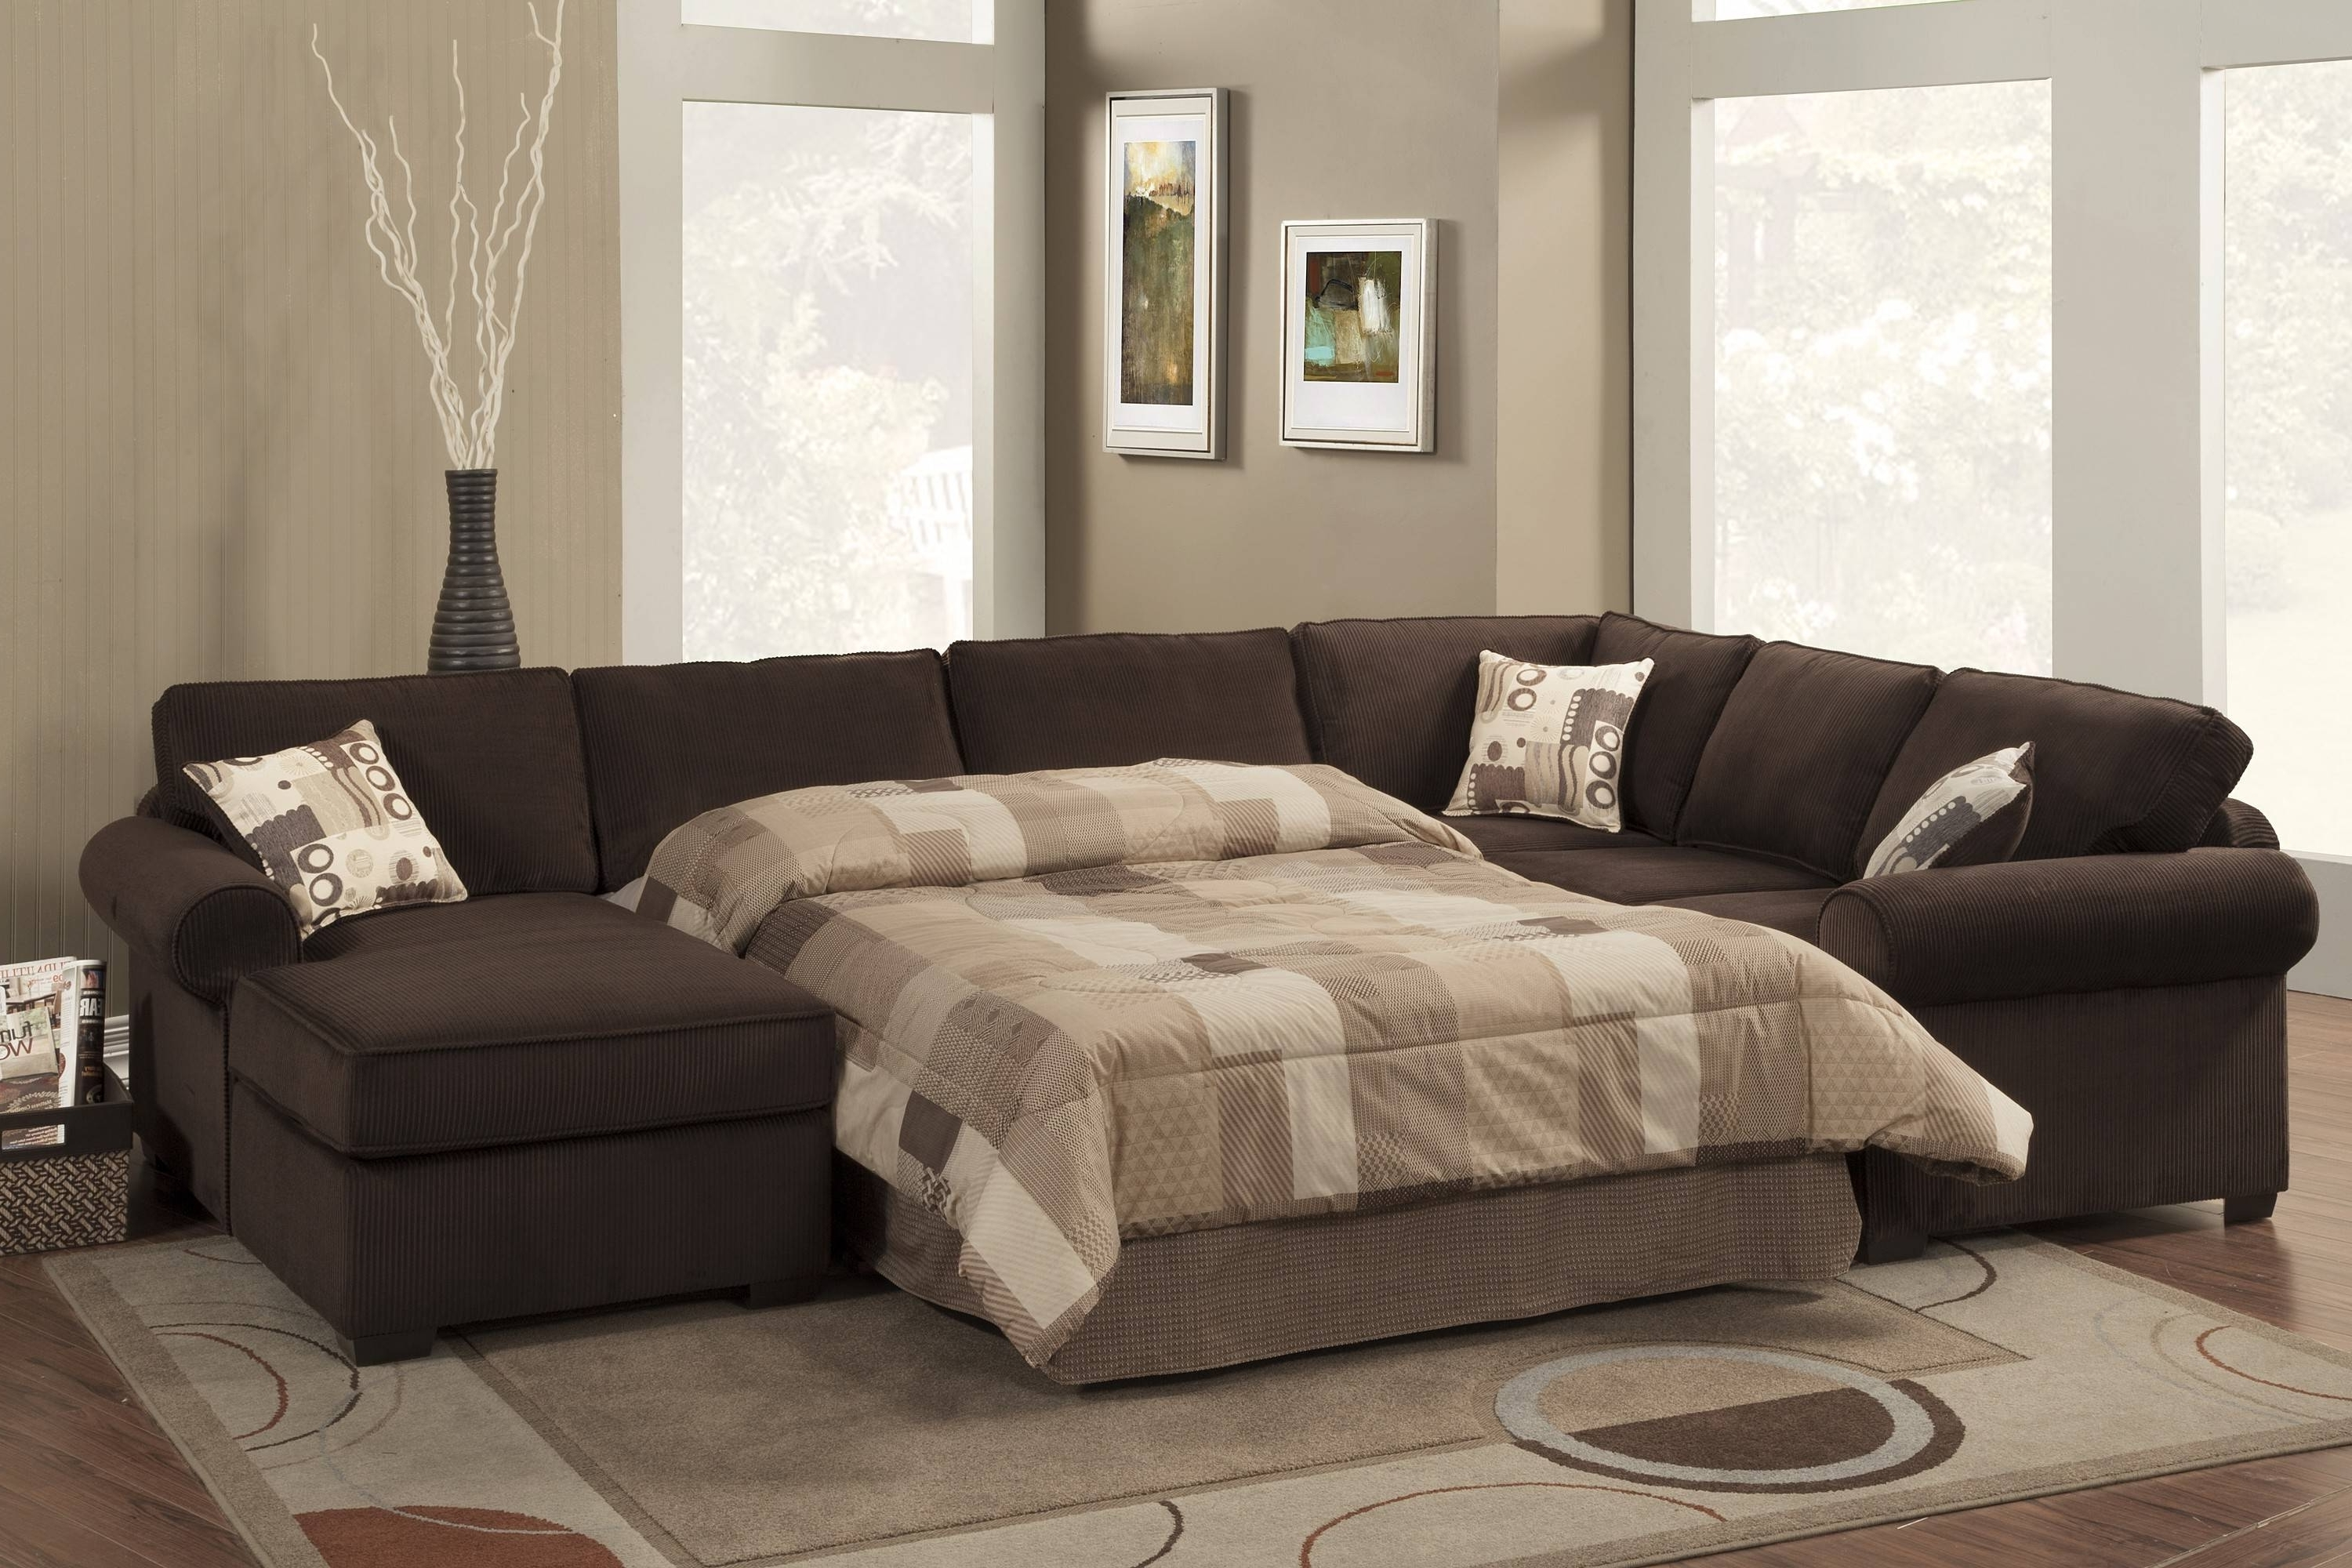 Sectional Sofas Regarding 2017 Cheap Sectional Sofas With Wide Sectional Couch With New Sectional (View 8 of 15)